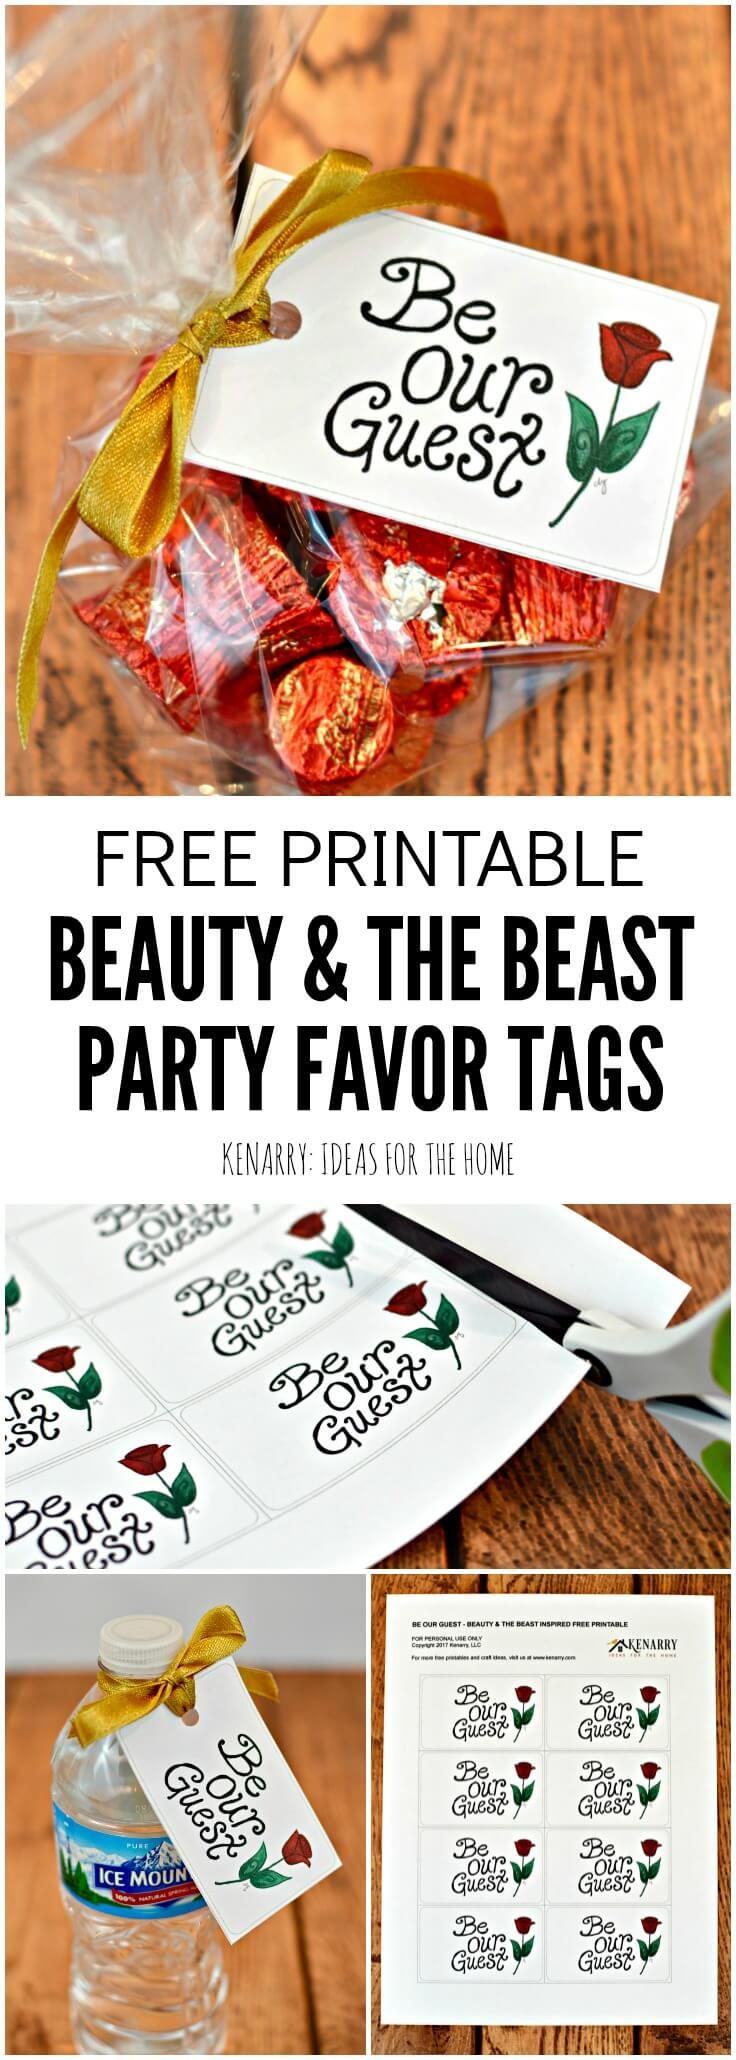 Beauty and the Beast Party Favors: Free Printable Tags | Disney ...